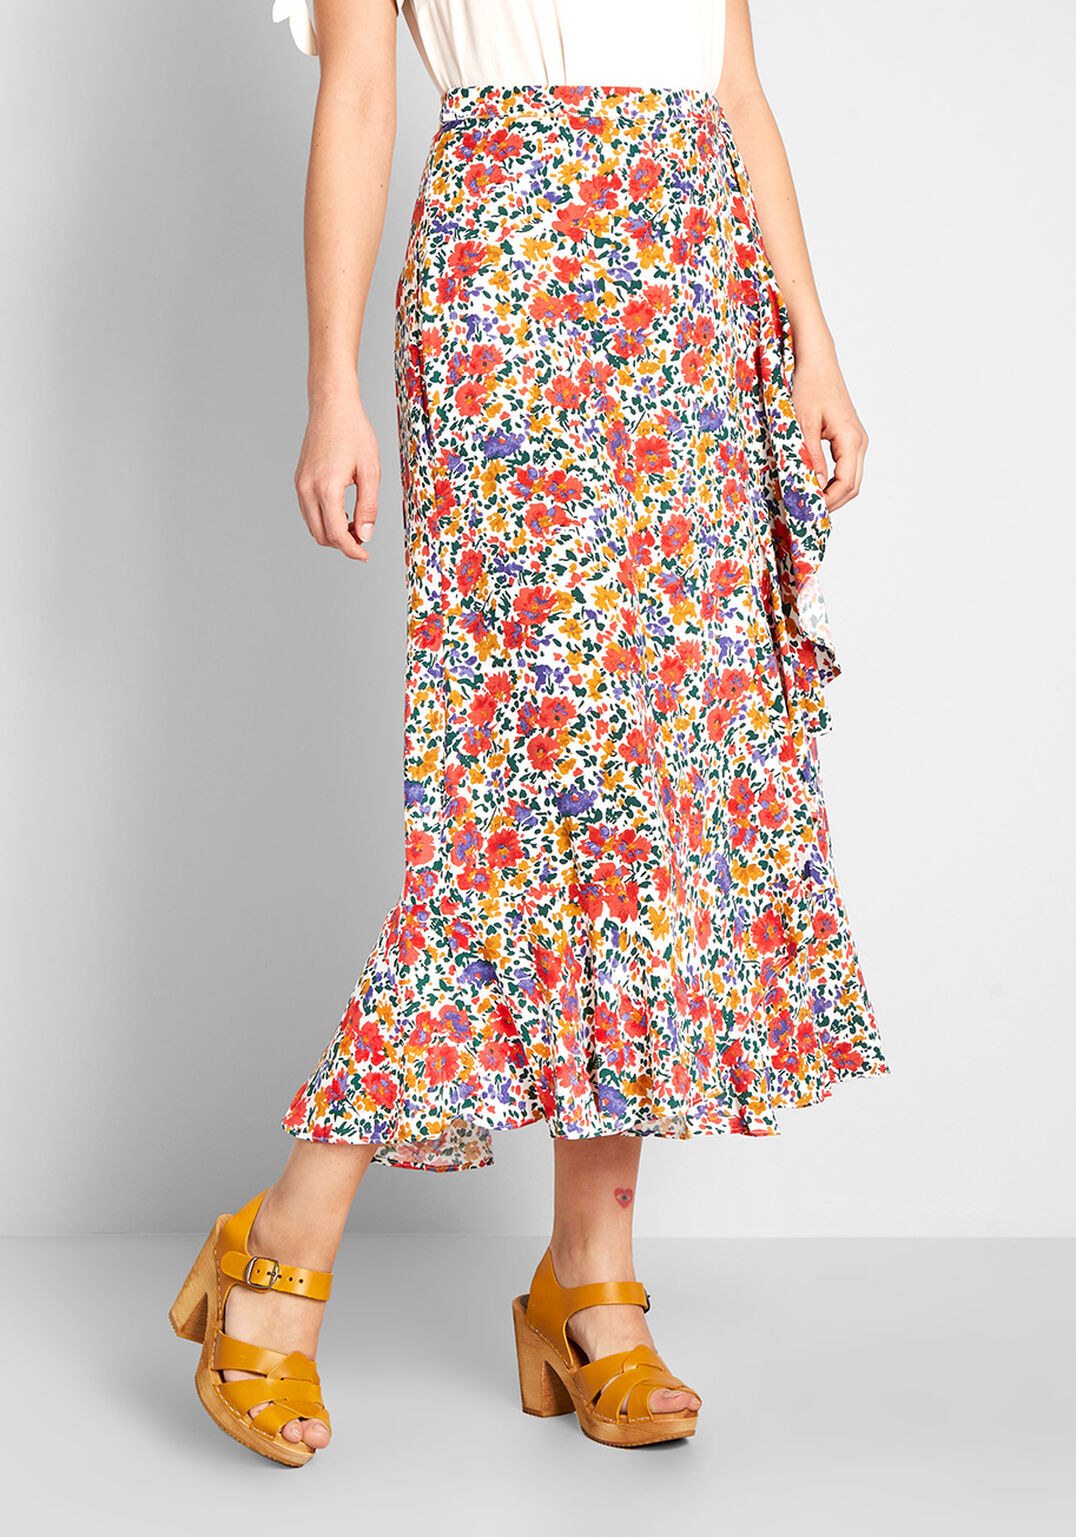 Closeup of a model wearing the skirt in a bright red, purple, and yellow flowers floral pattern that comes down to the ankles